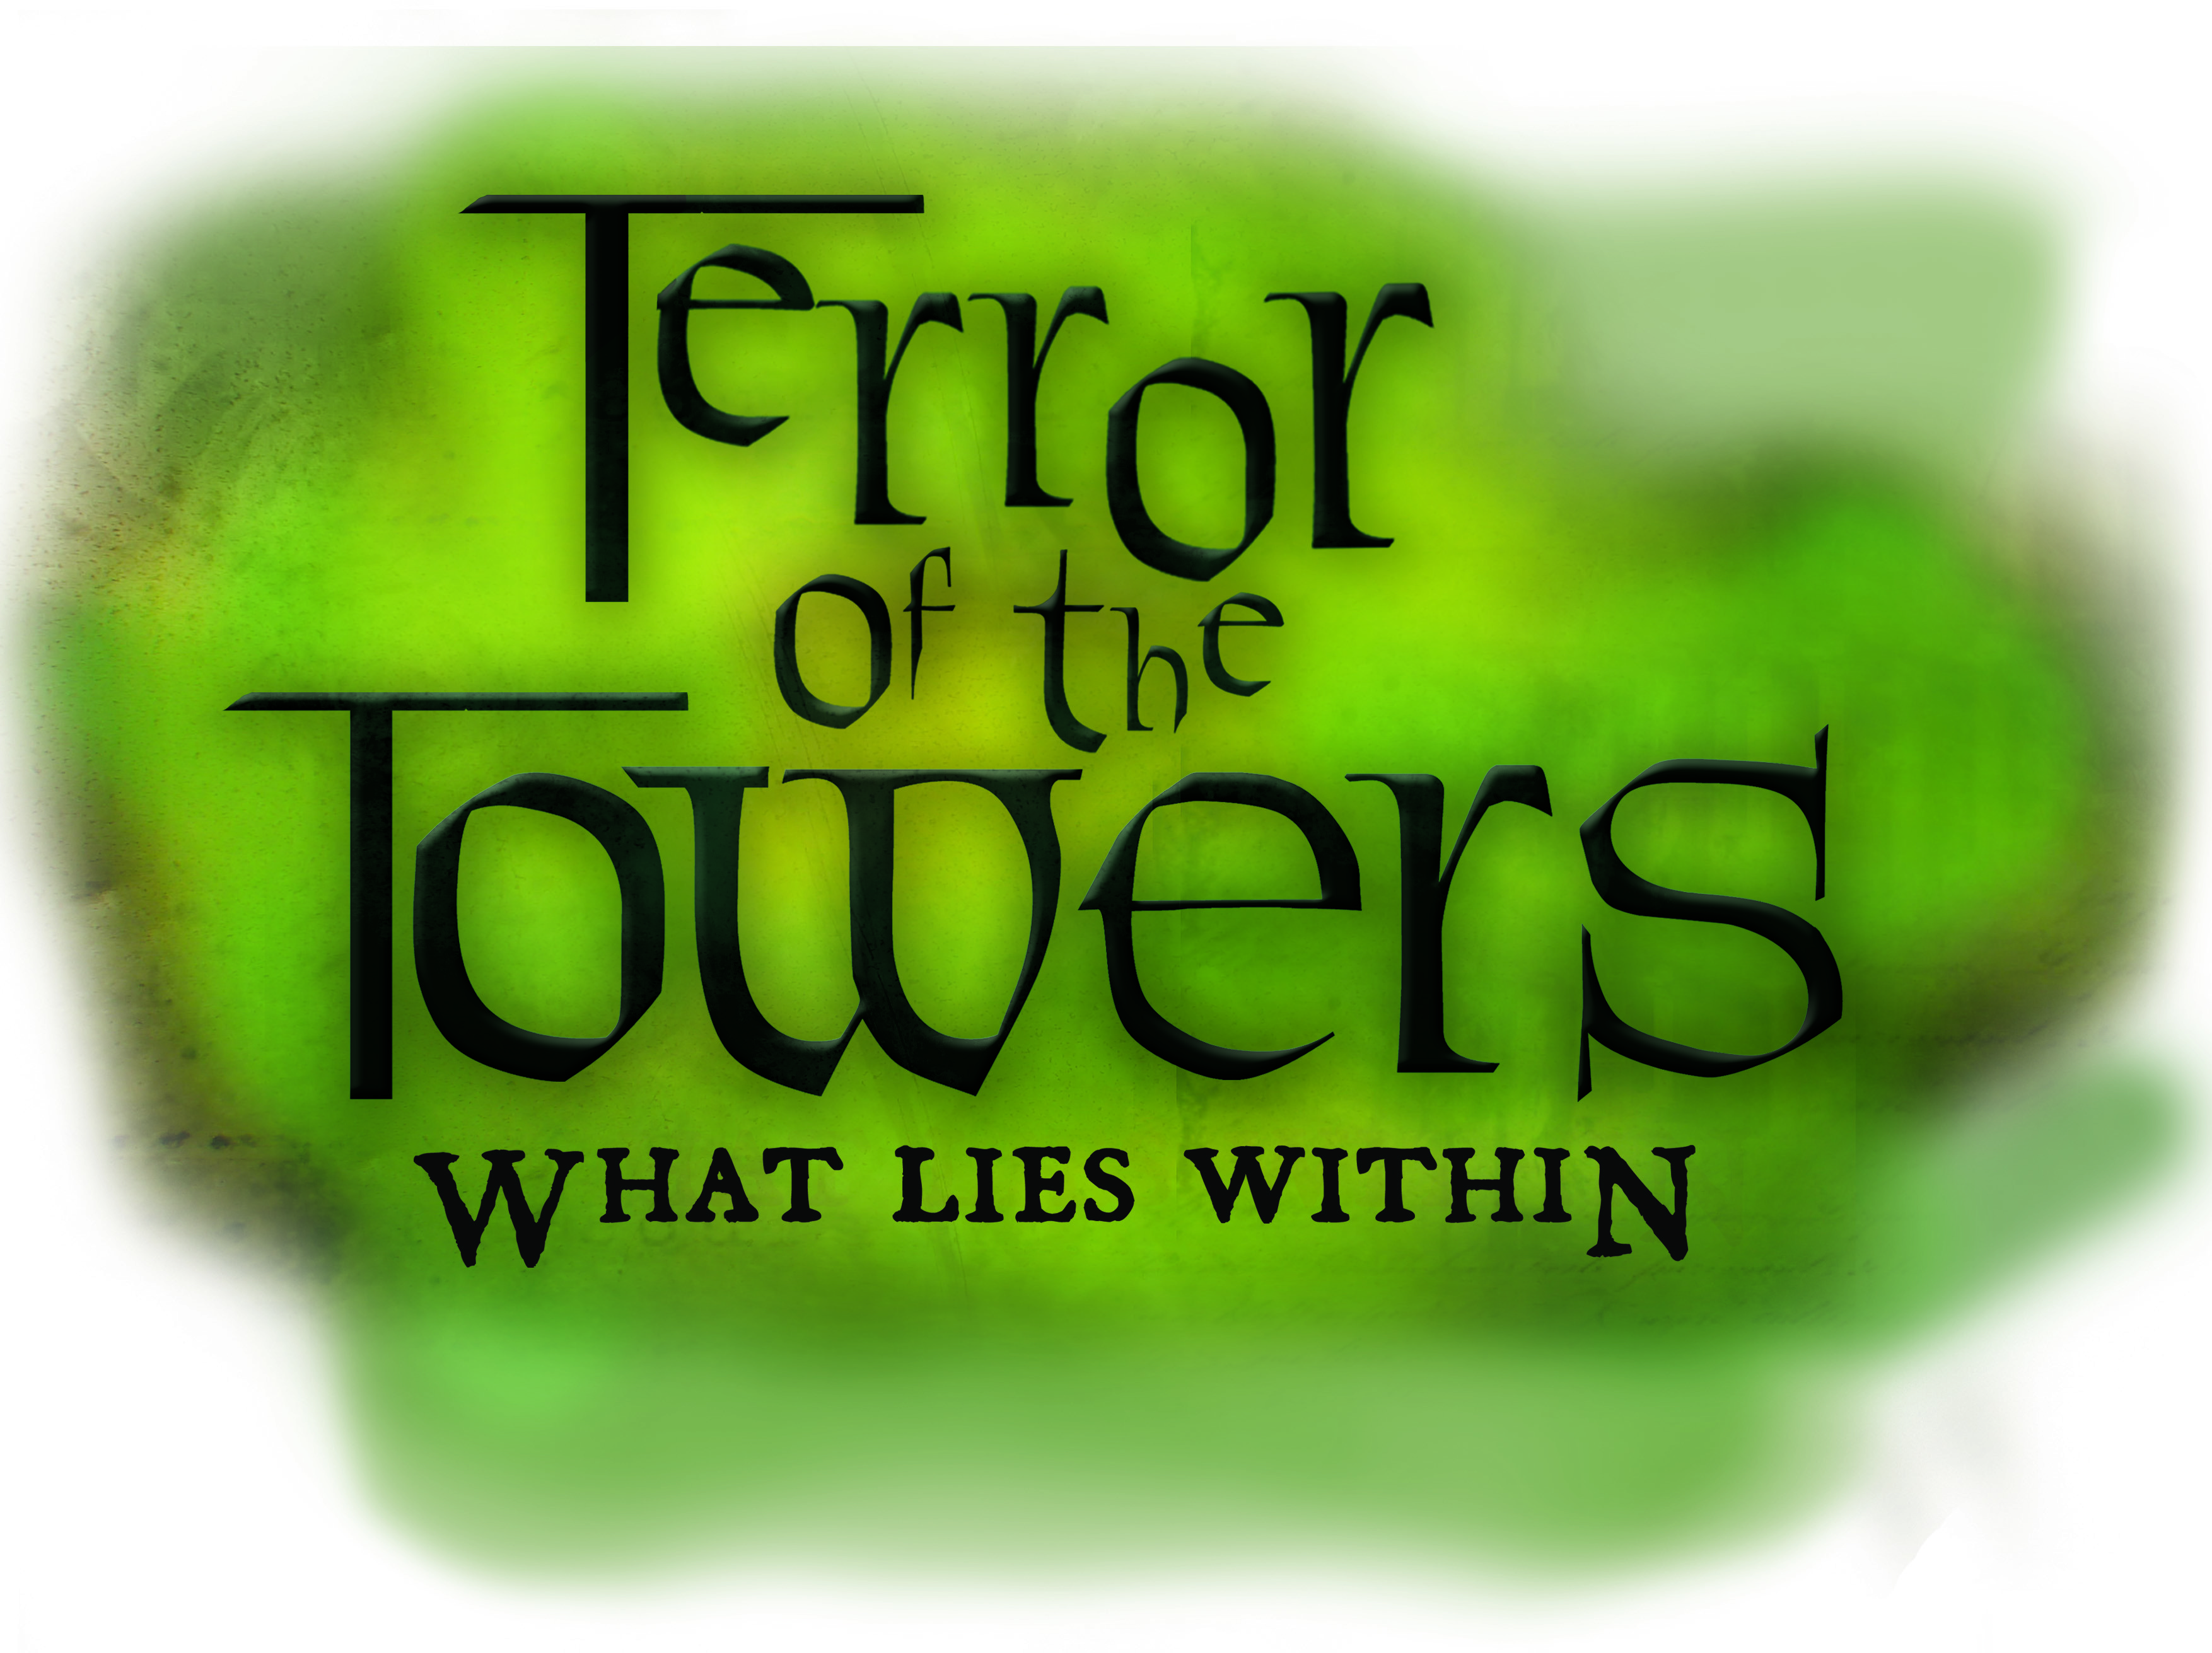 terror-of-the-towers-wlw-floating